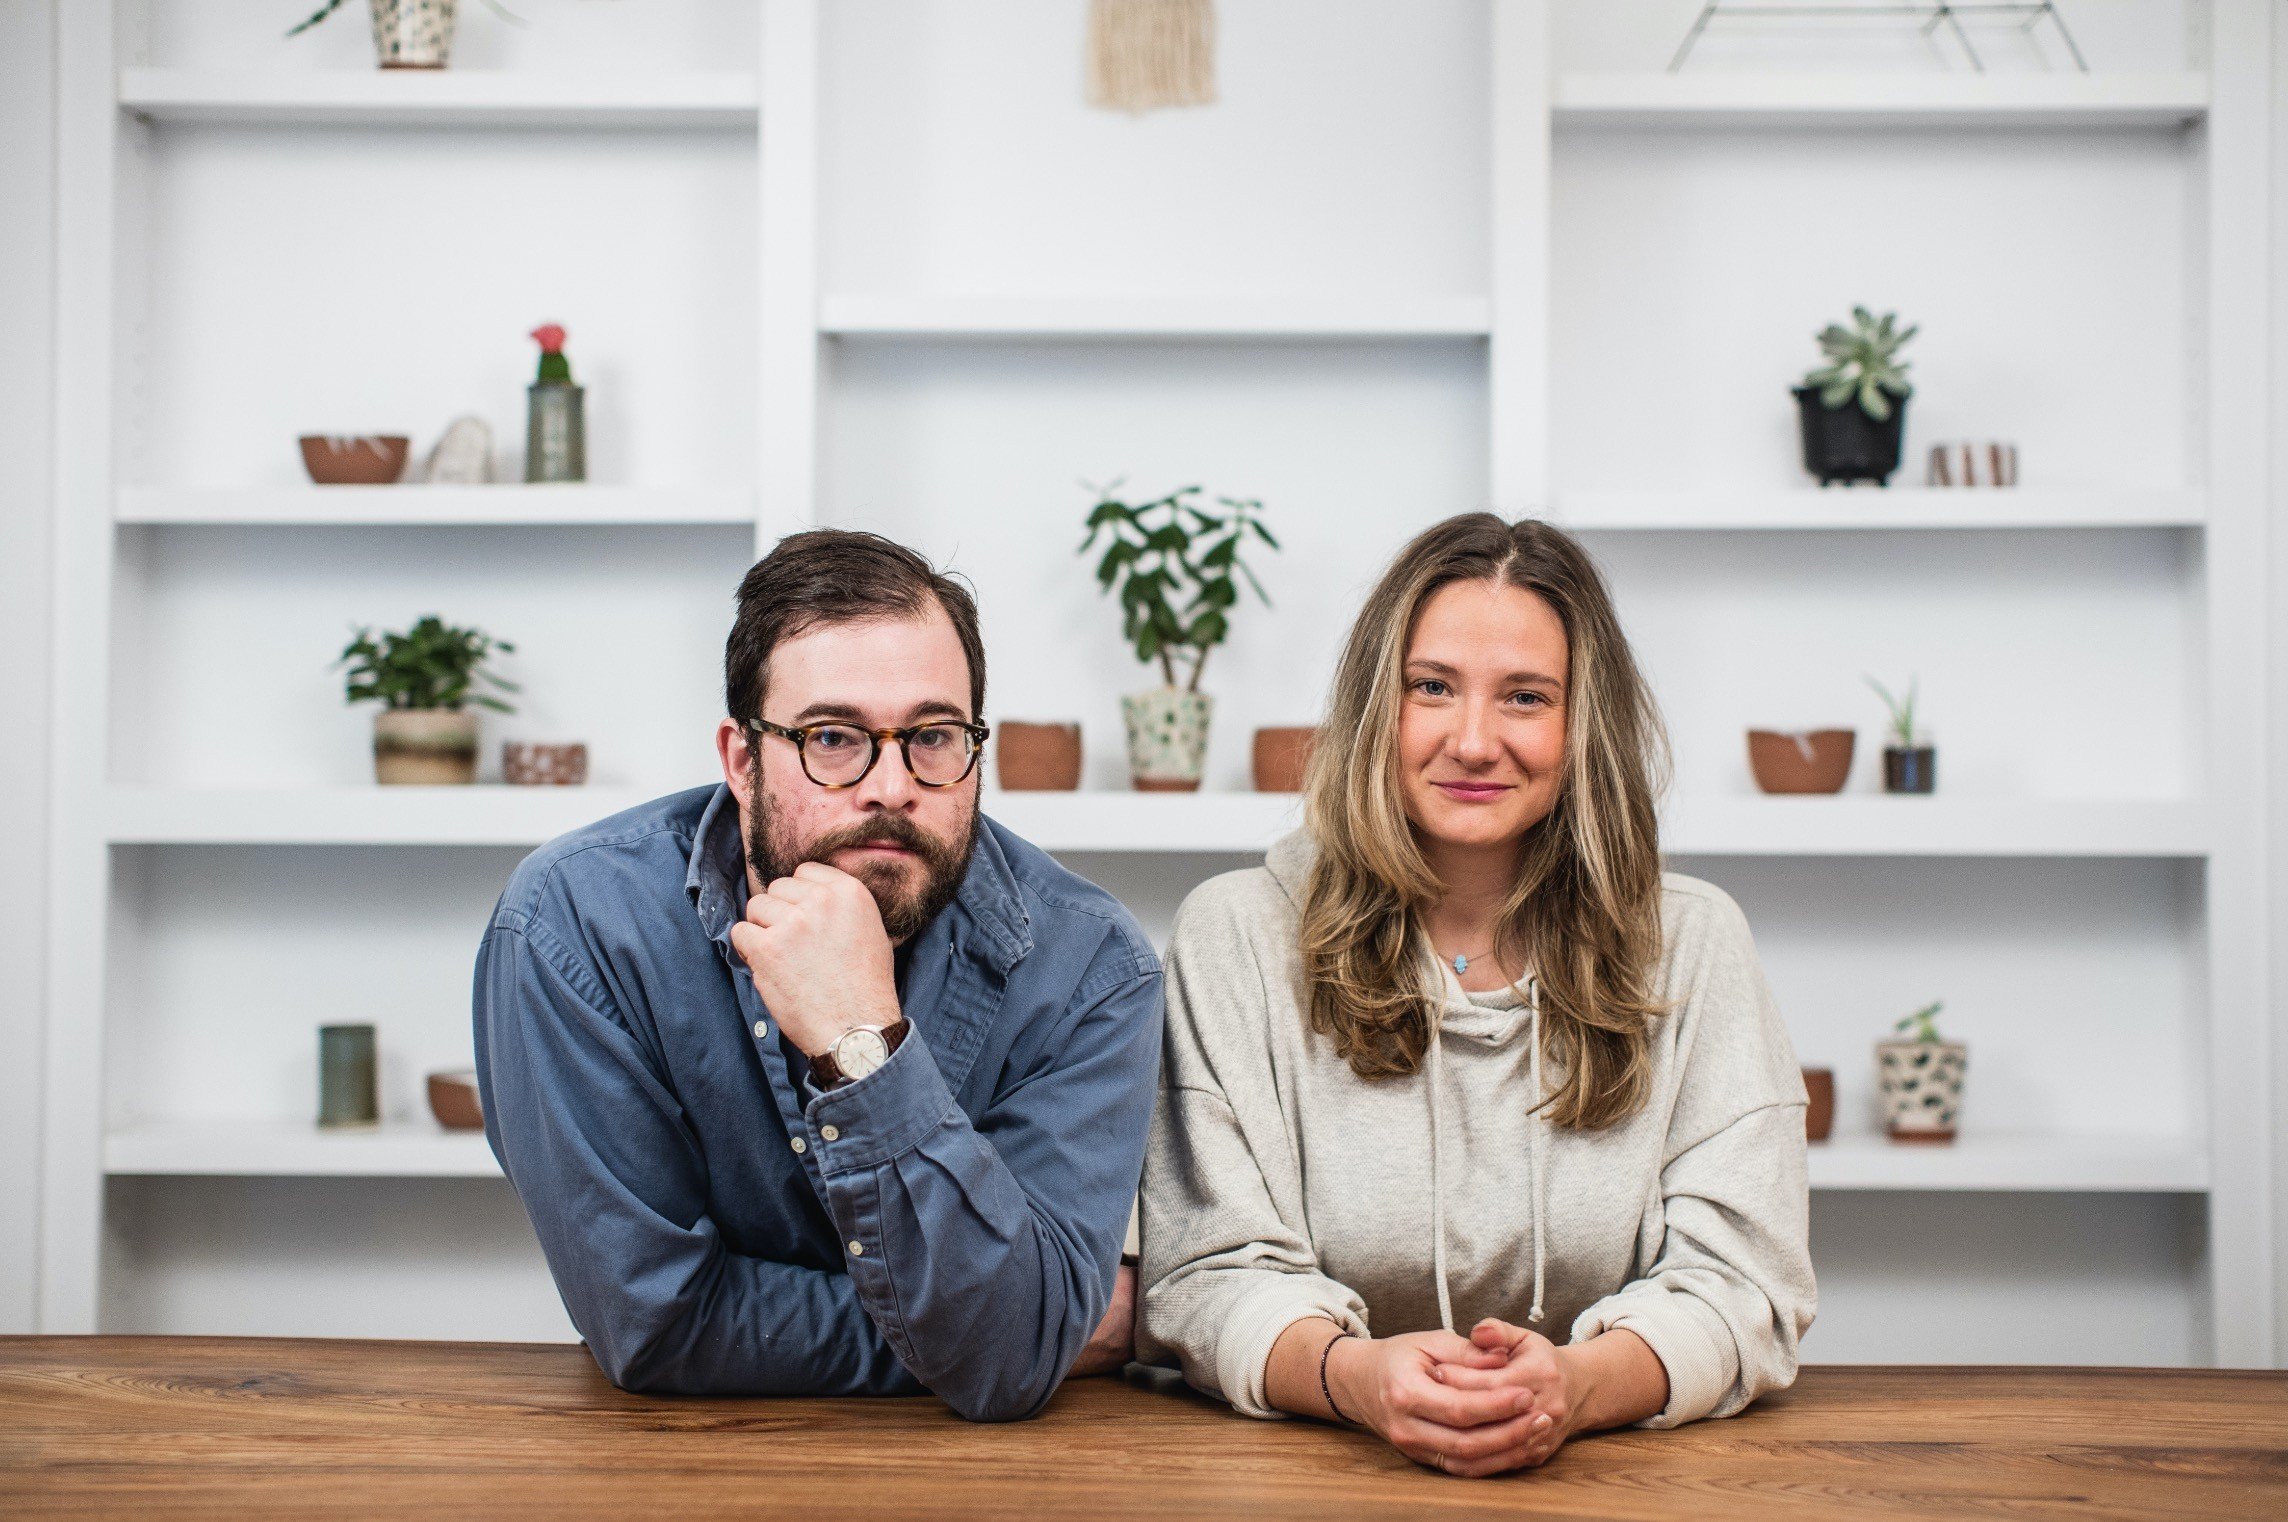 Anna Gilkerson and her partner Zac from Makenew Curated Thrift & Unique Essentials